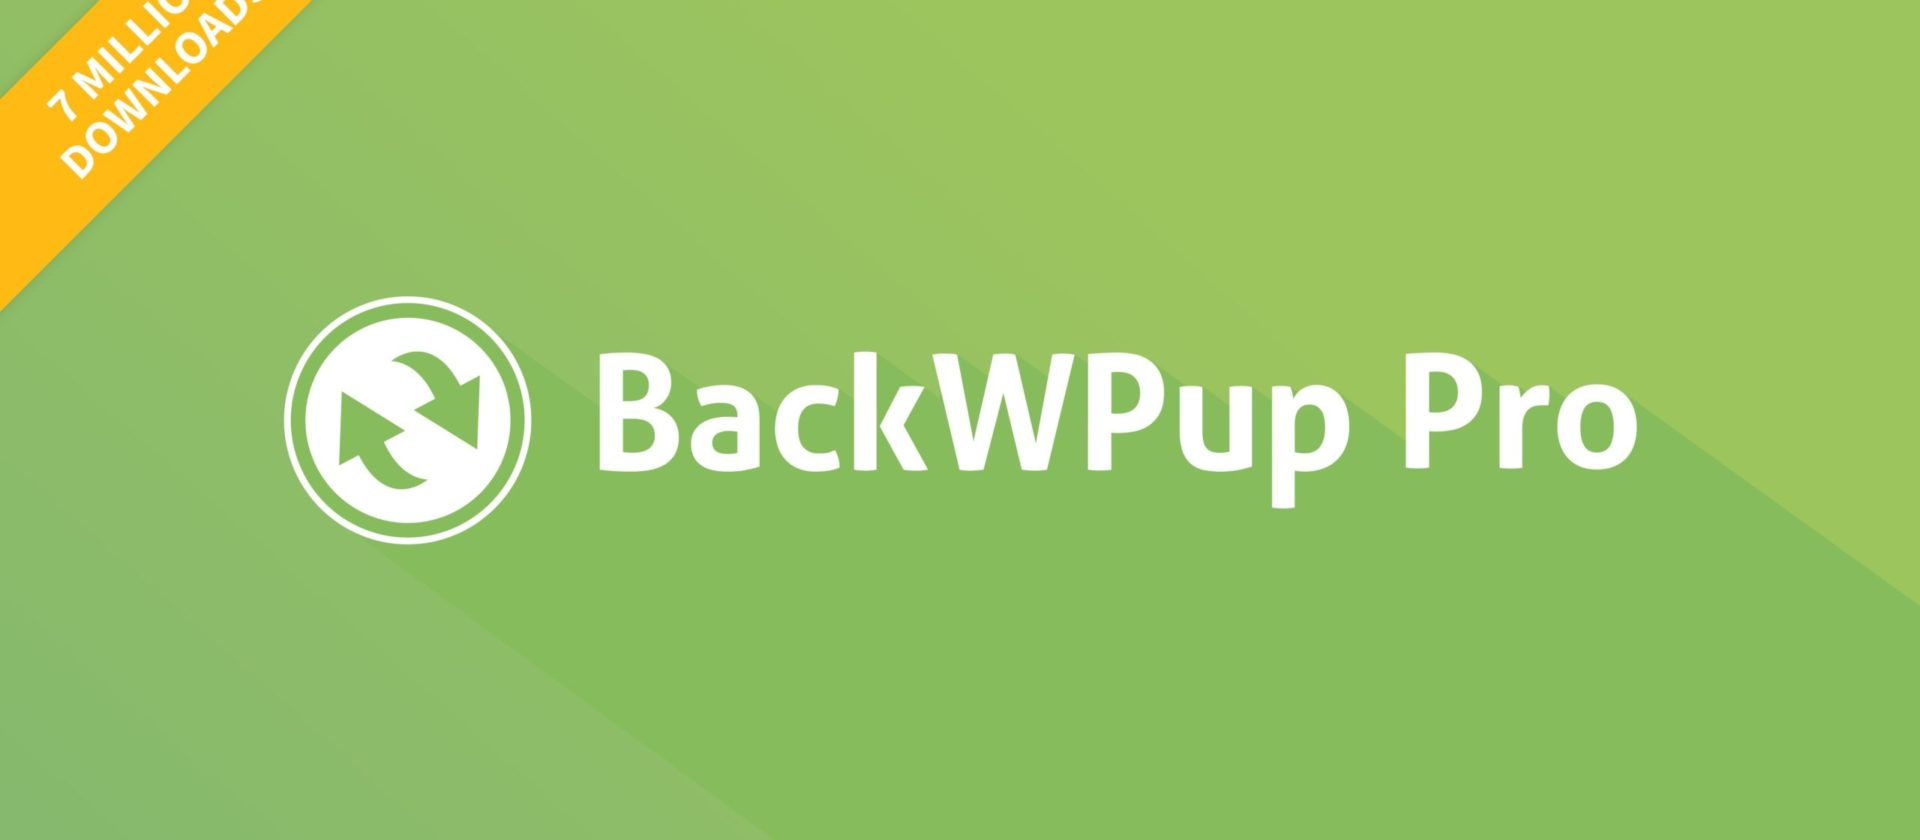 7 Millionen BackWPup Downloads